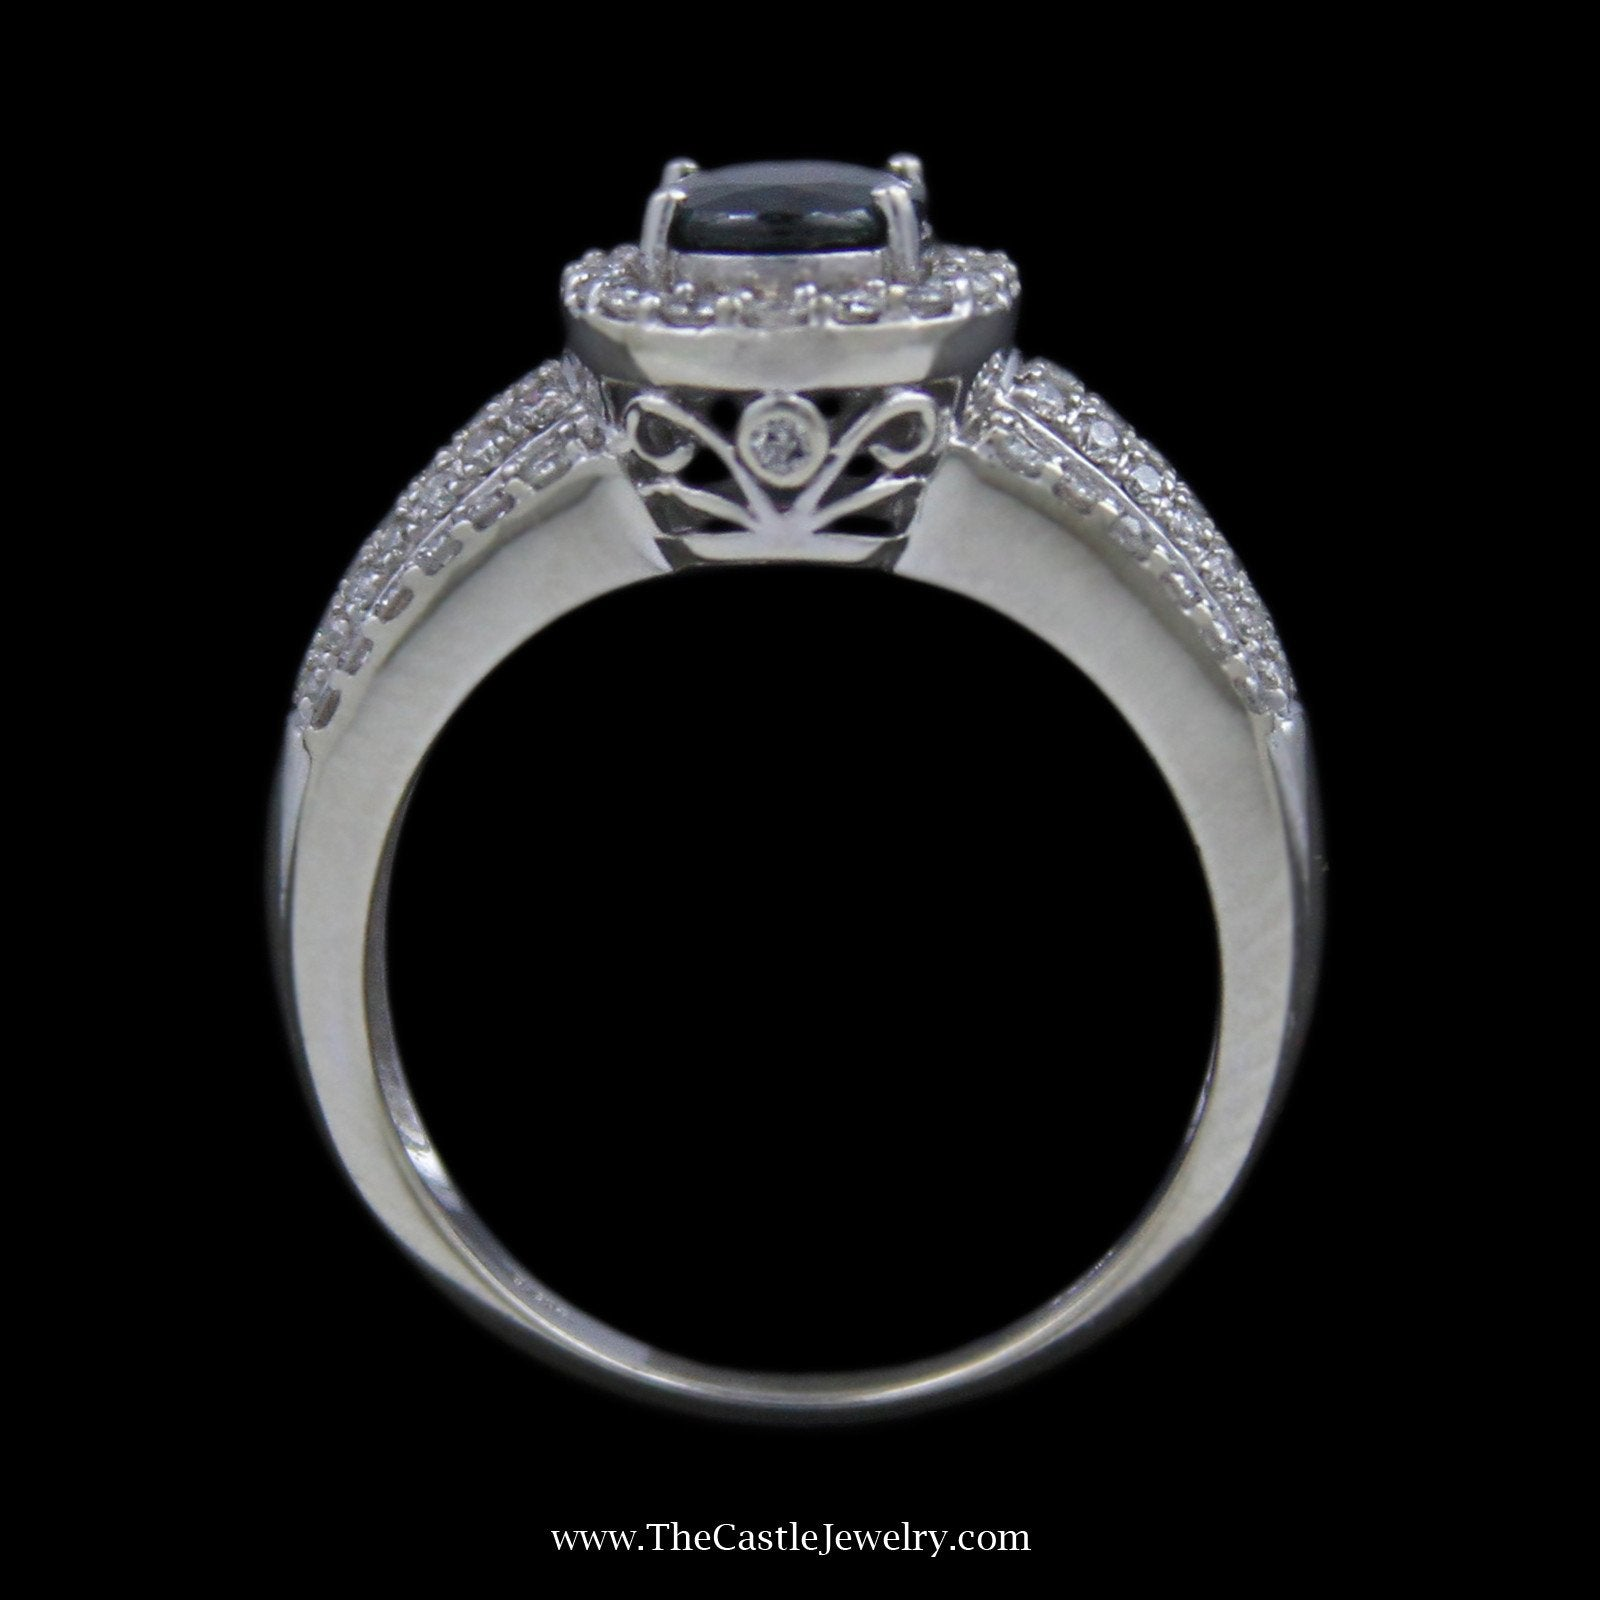 Oval Sapphire Ring, Round Brilliant Cut Diamond Bezel & Sides in 14K White Gold-1